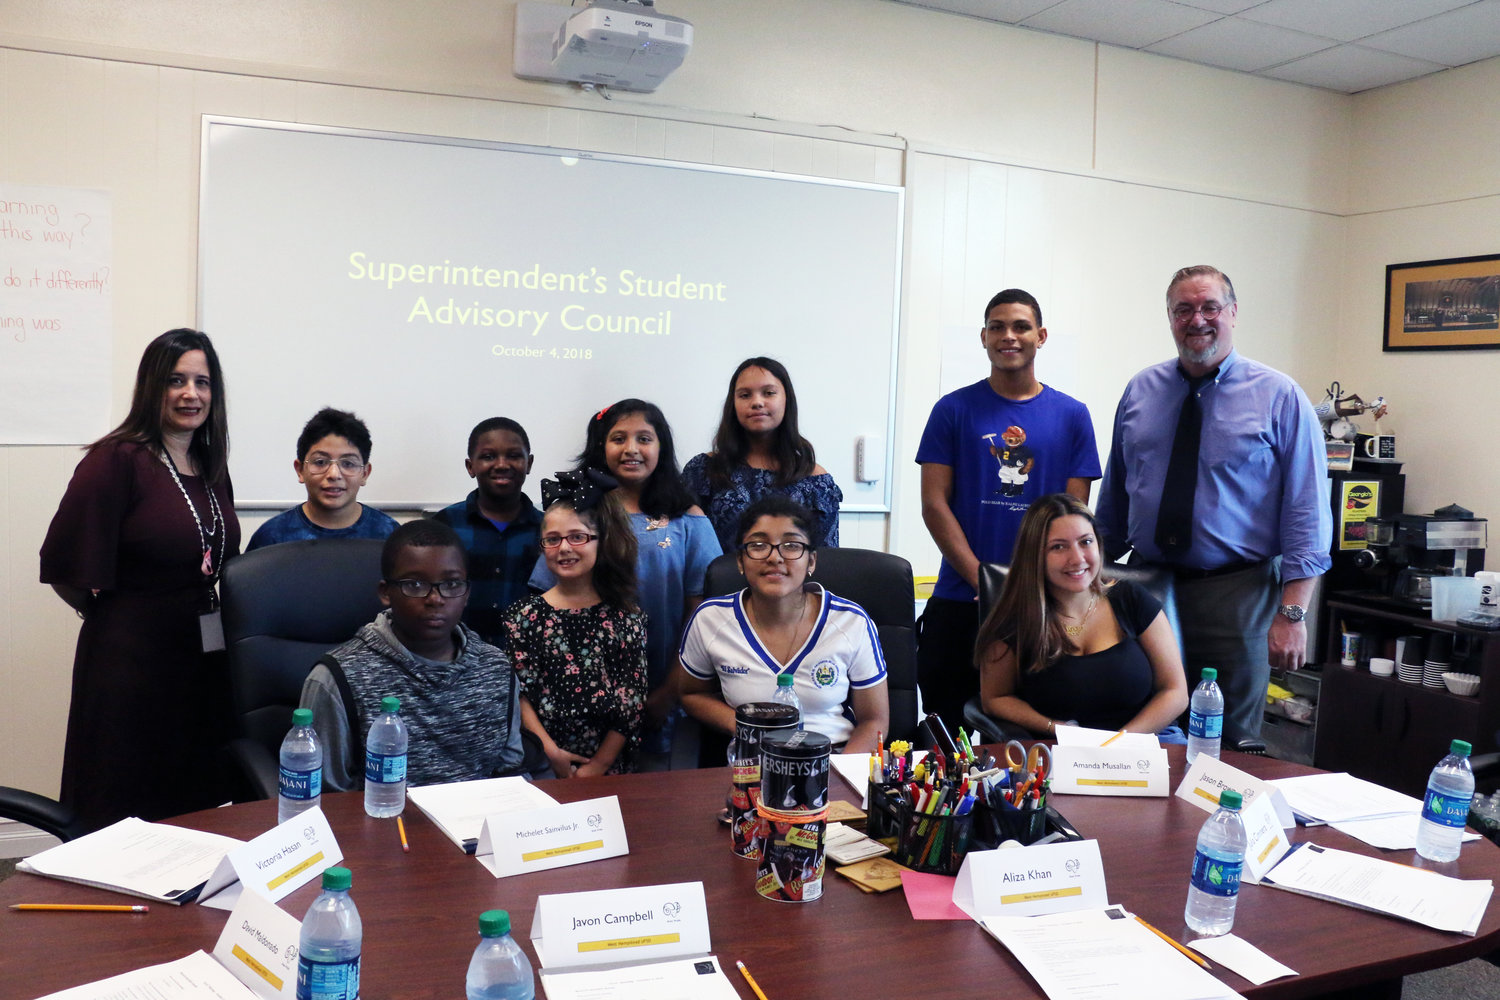 West Hempstead School District Superintendent Daniel Rehman and Assistant Superintendent Dina Reilly met with members of the Superintendent's Student Advisory Council on Oct. 4.